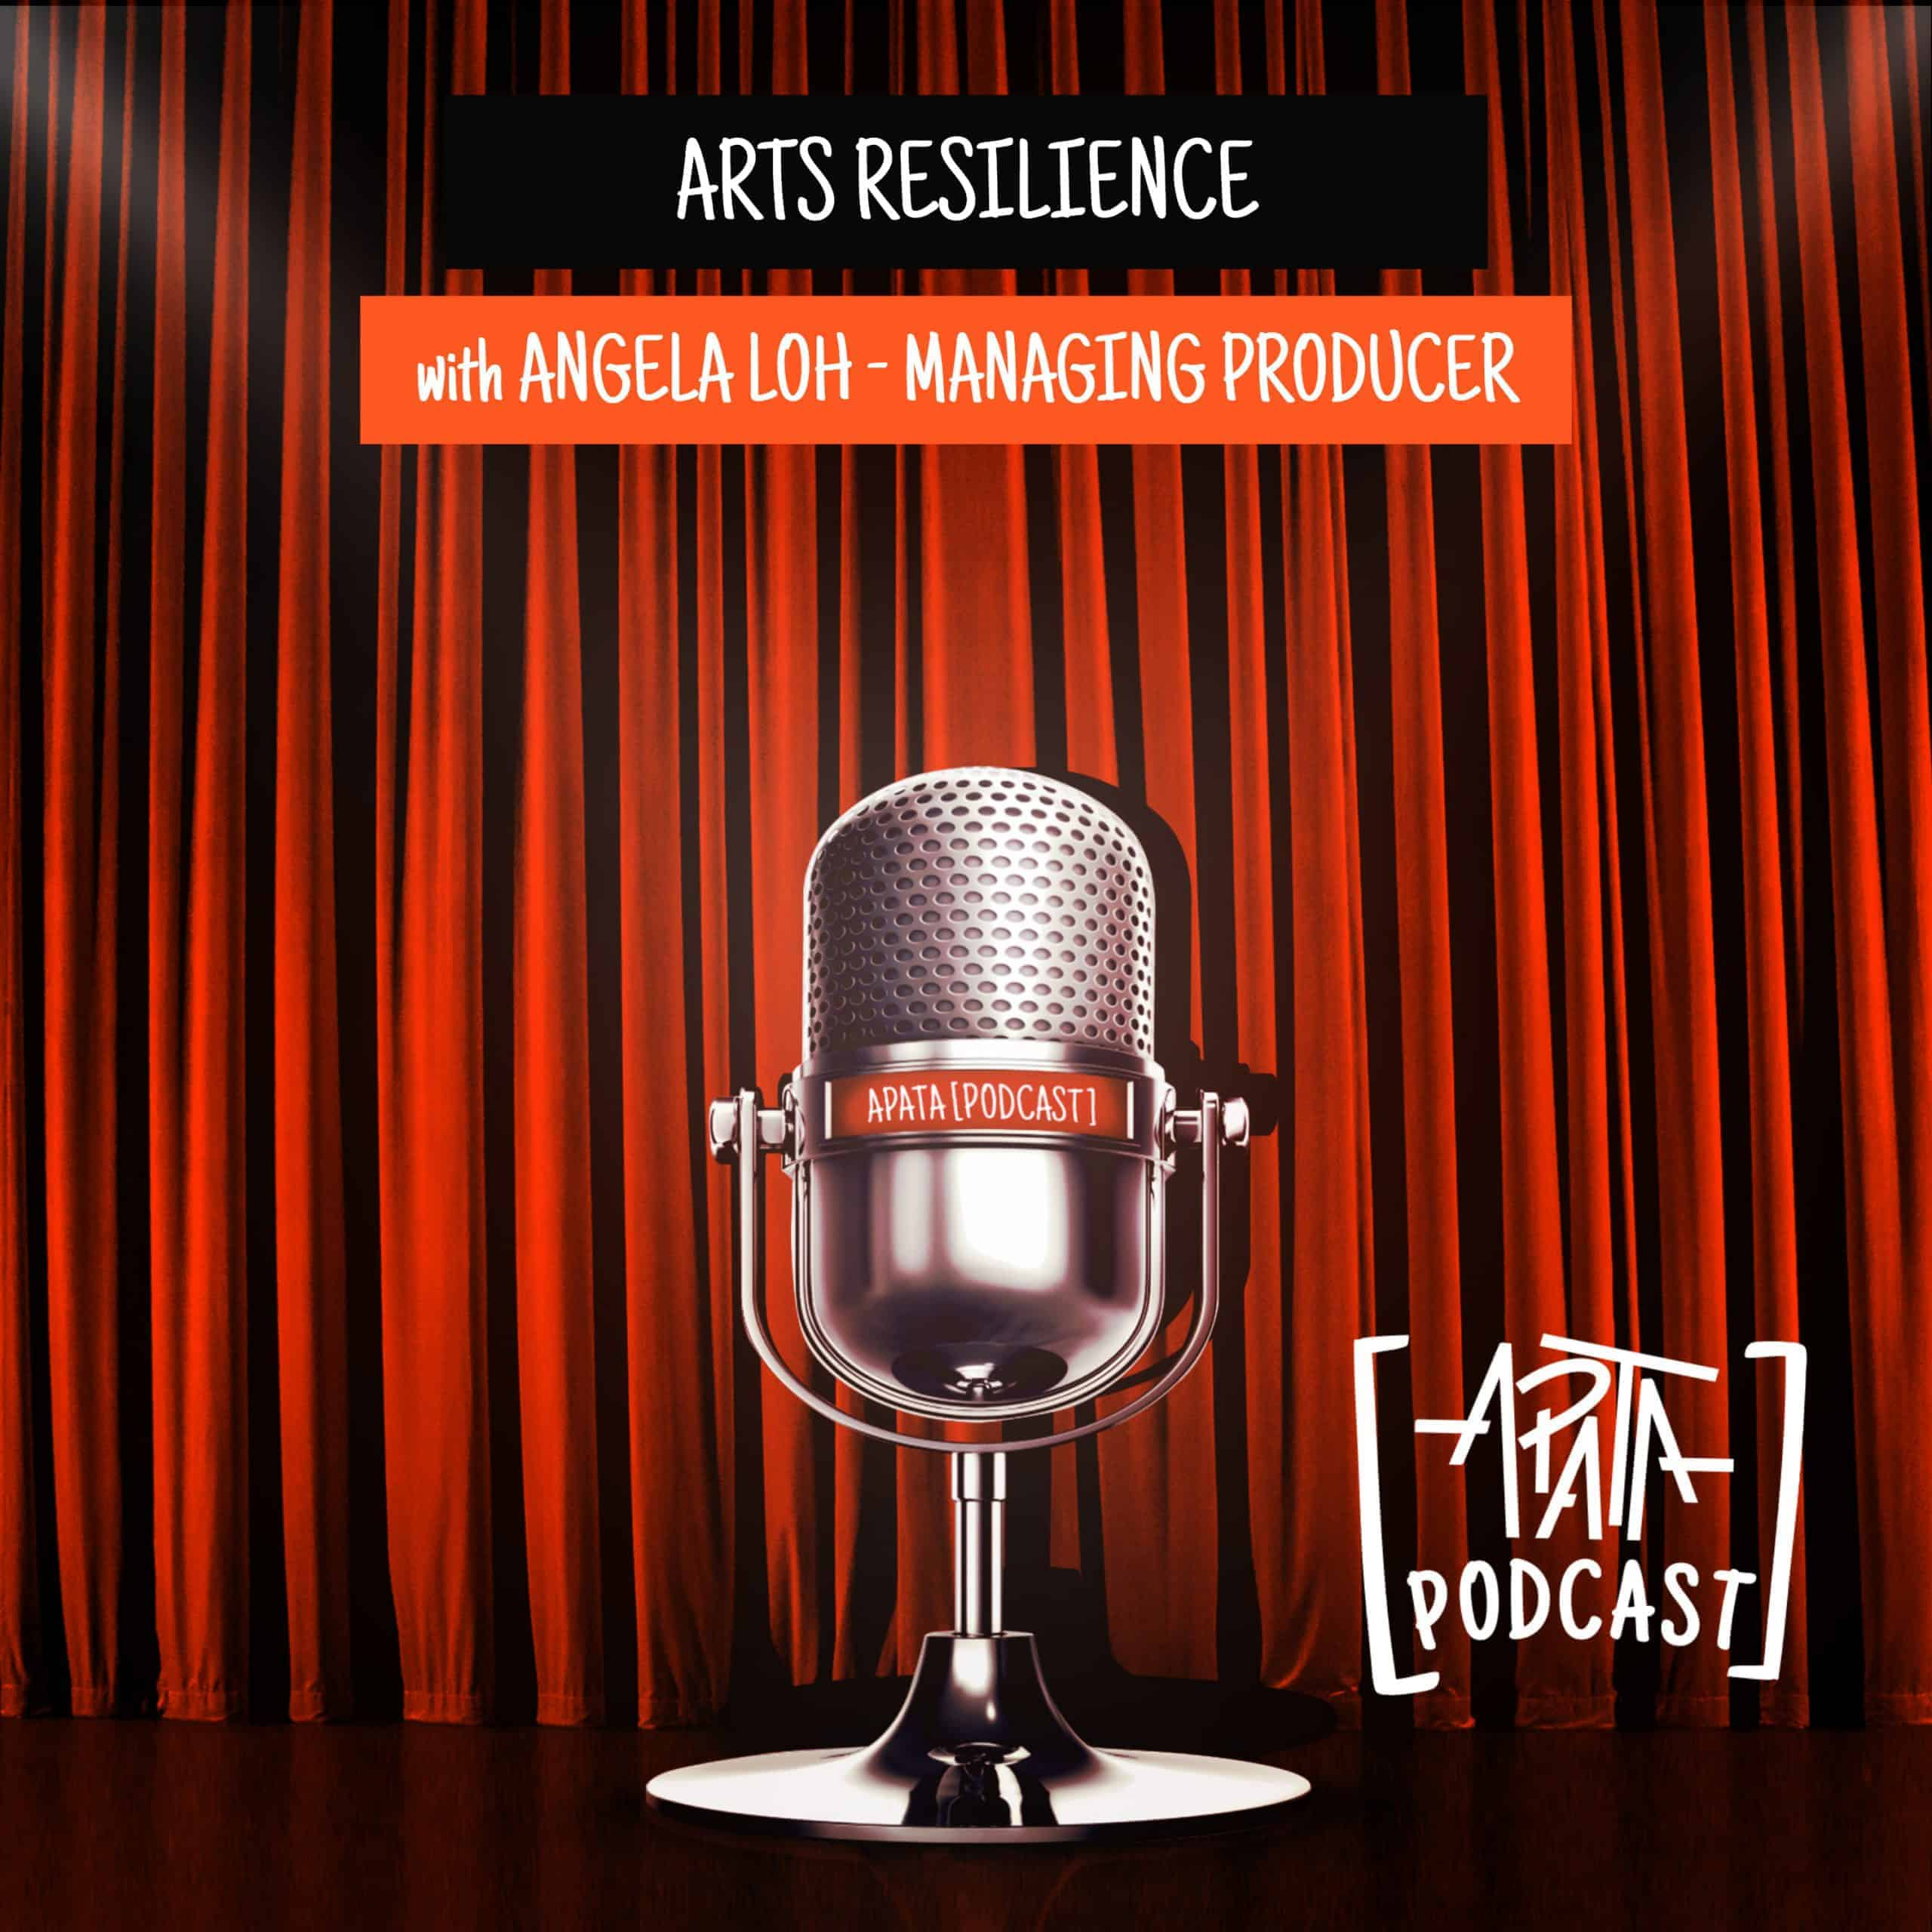 Arts Resilience - With Angela Loh